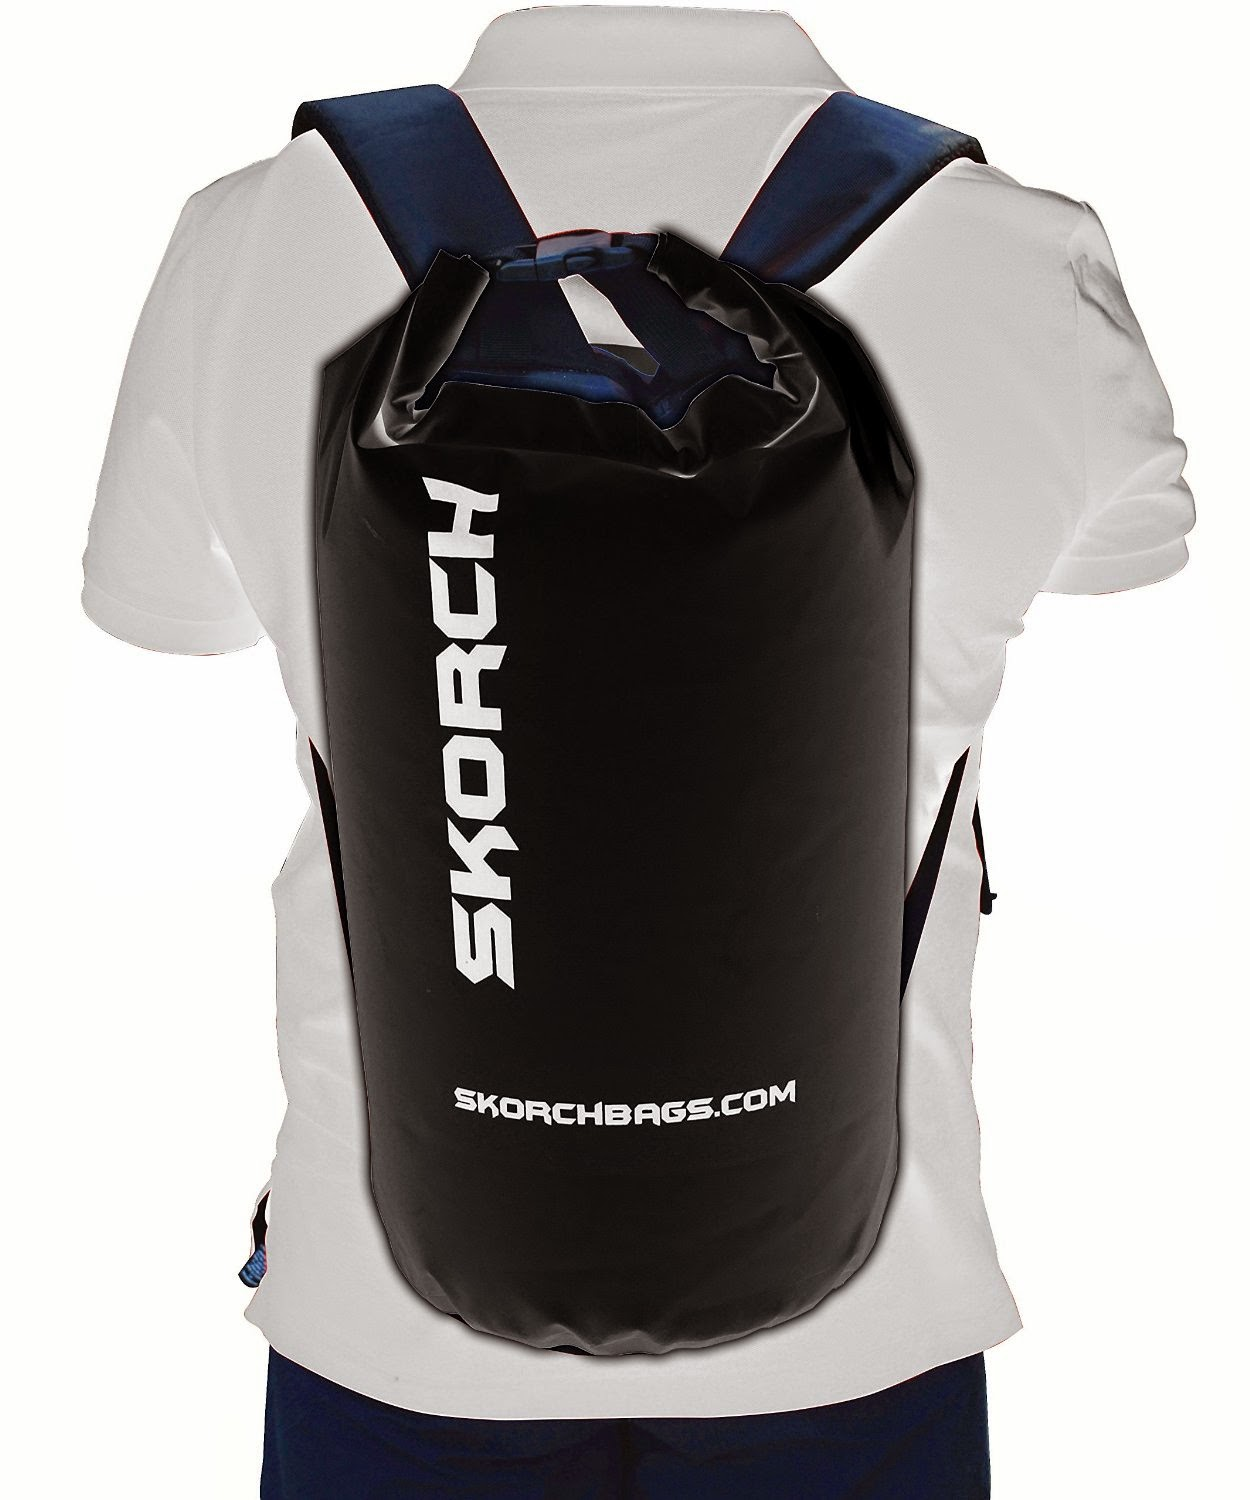 Popular Product Reviews by Amy: SKORCH Dry Bag Waterproof ...